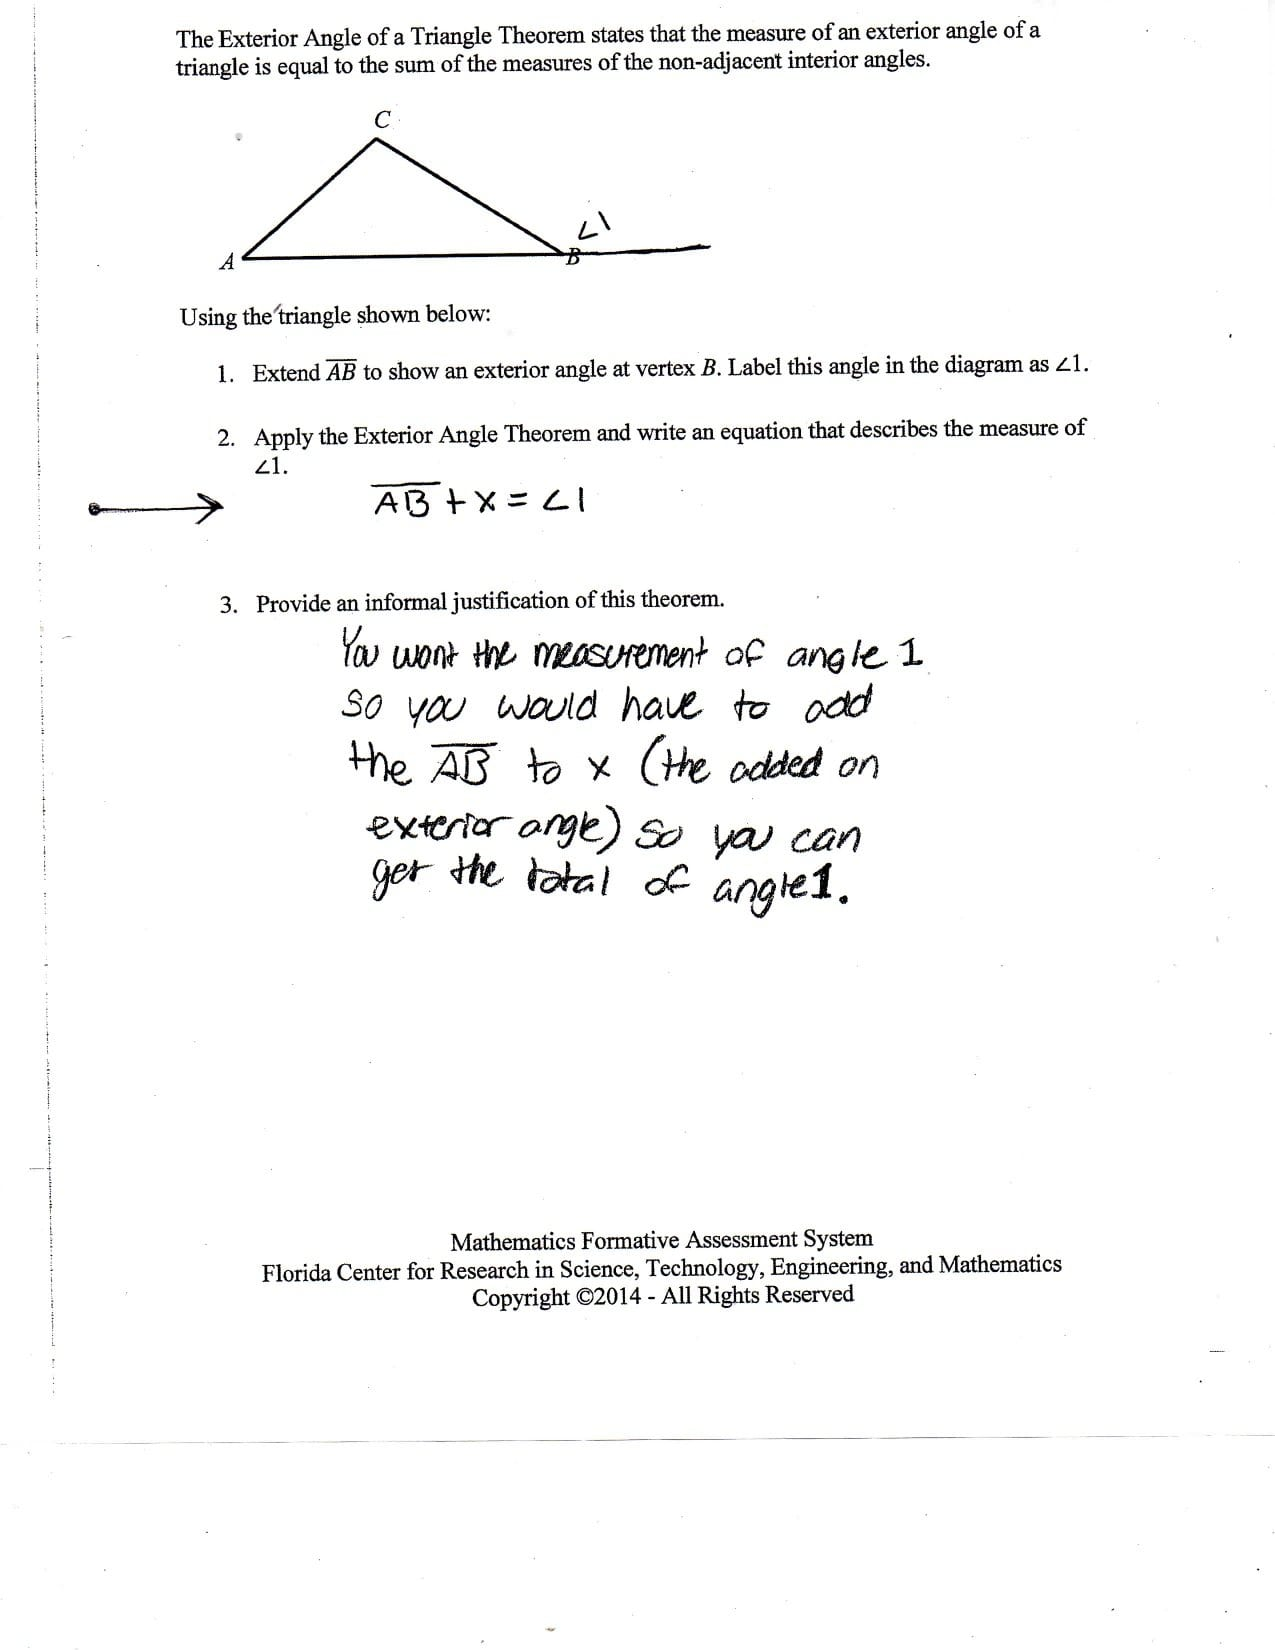 Triangle Sum And Exterior Angle Theorem Worksheet Fraction Within Triangle Sum And Exterior Angle Theorem Worksheet